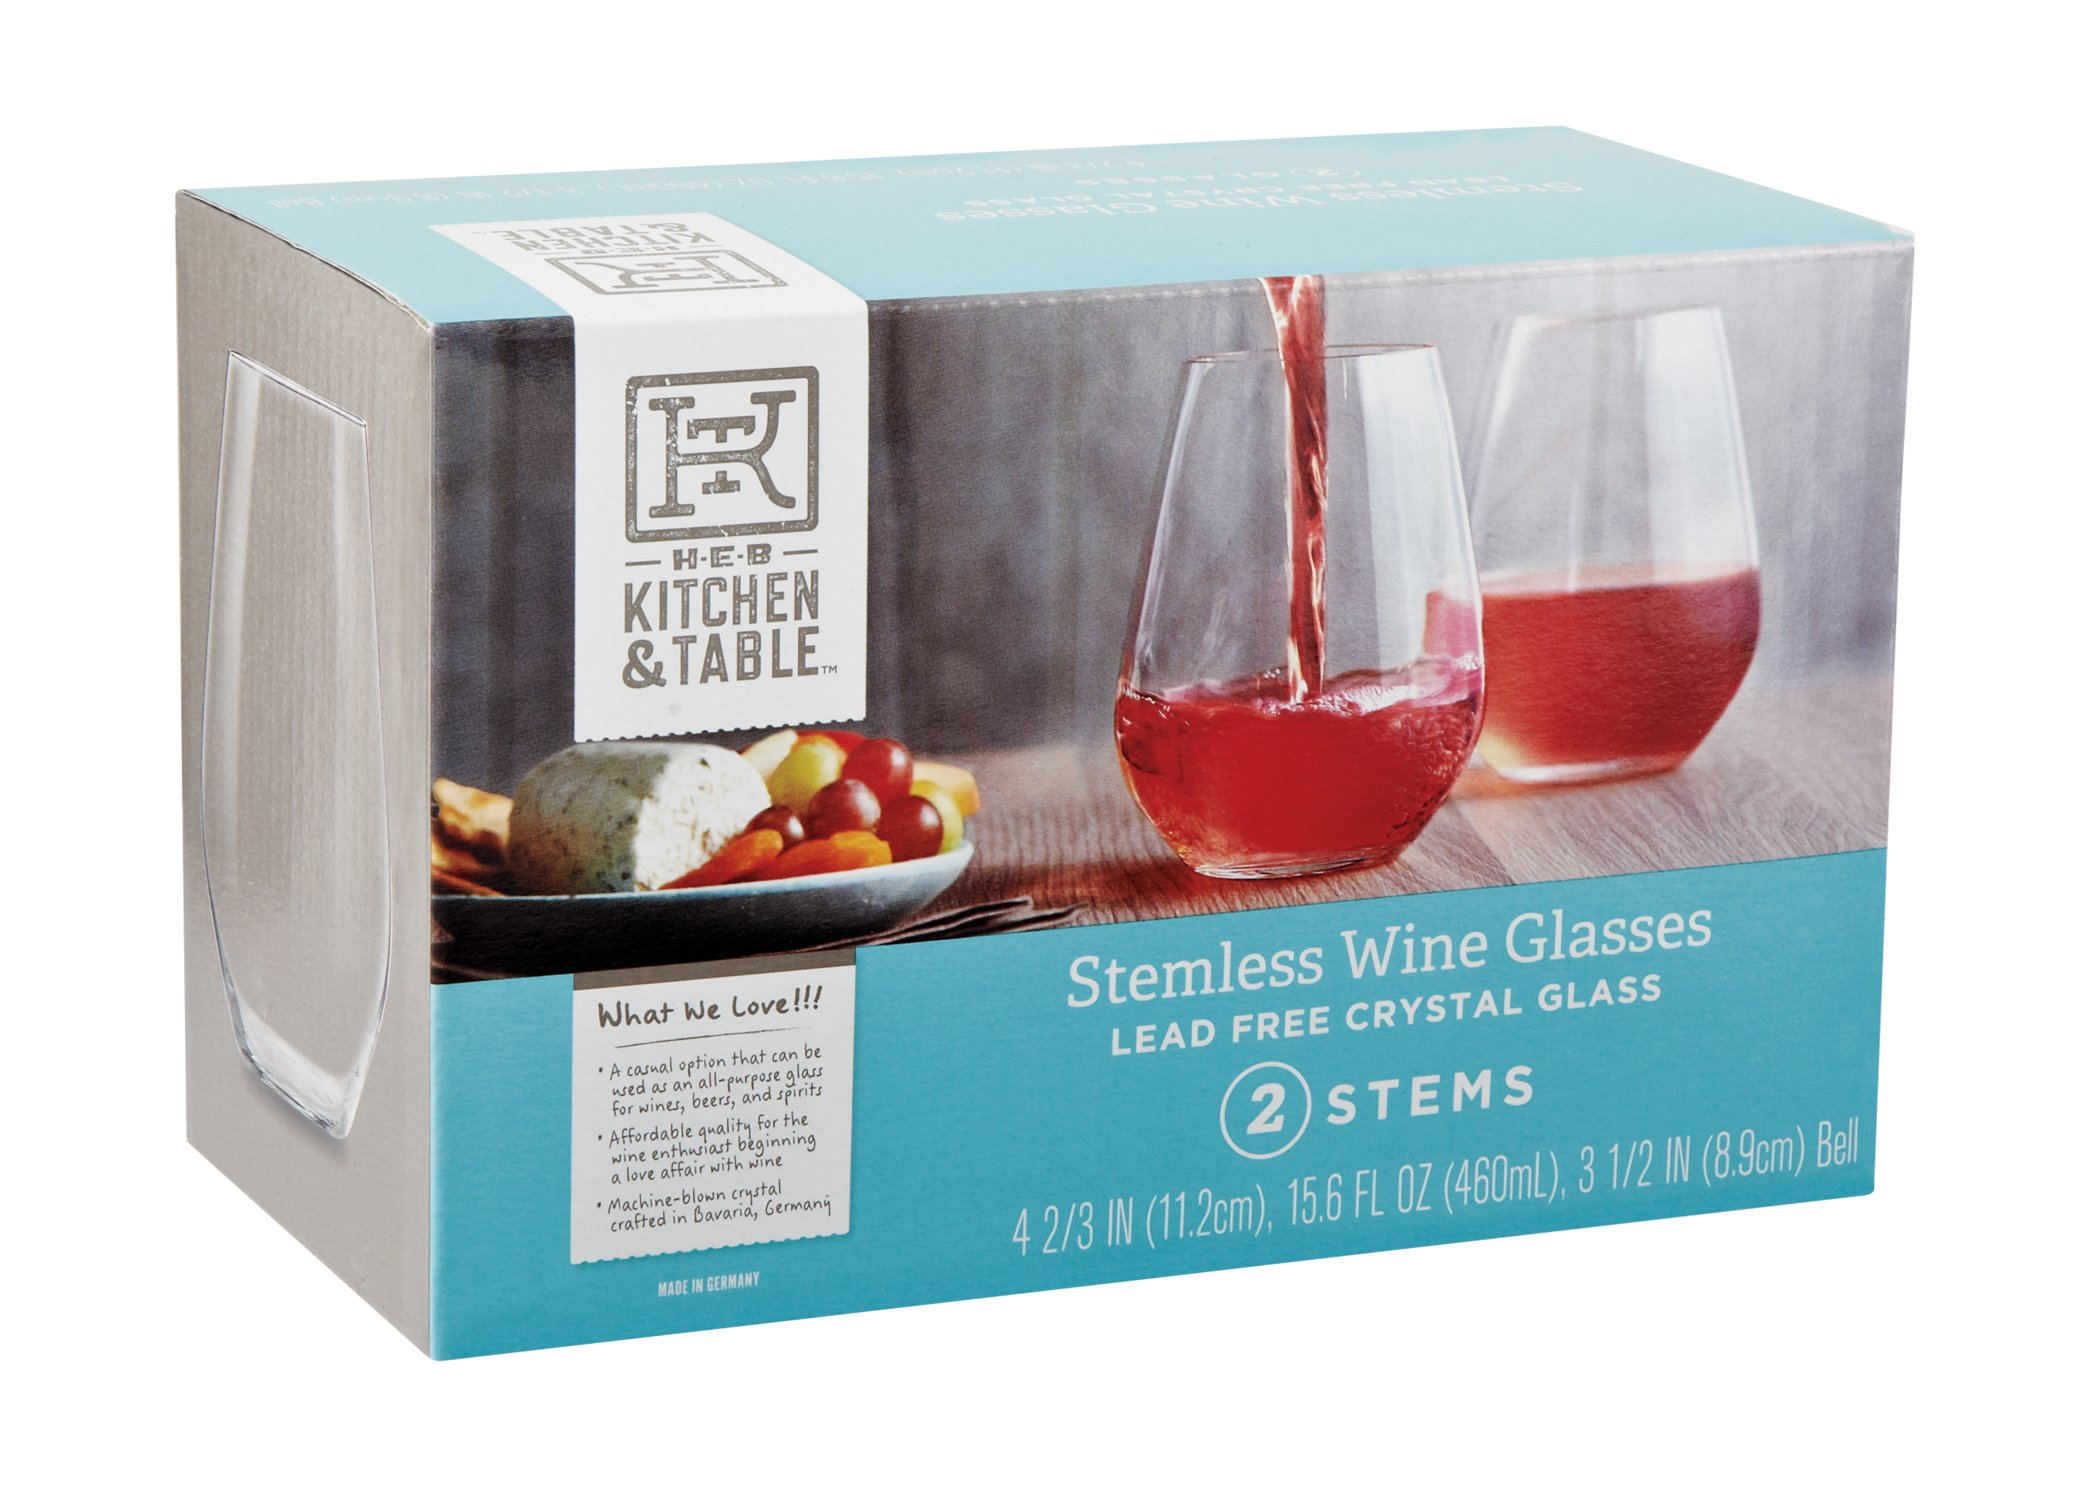 Kitchen and Table Stemless Wine Glasses - Shop Glassware at HEB